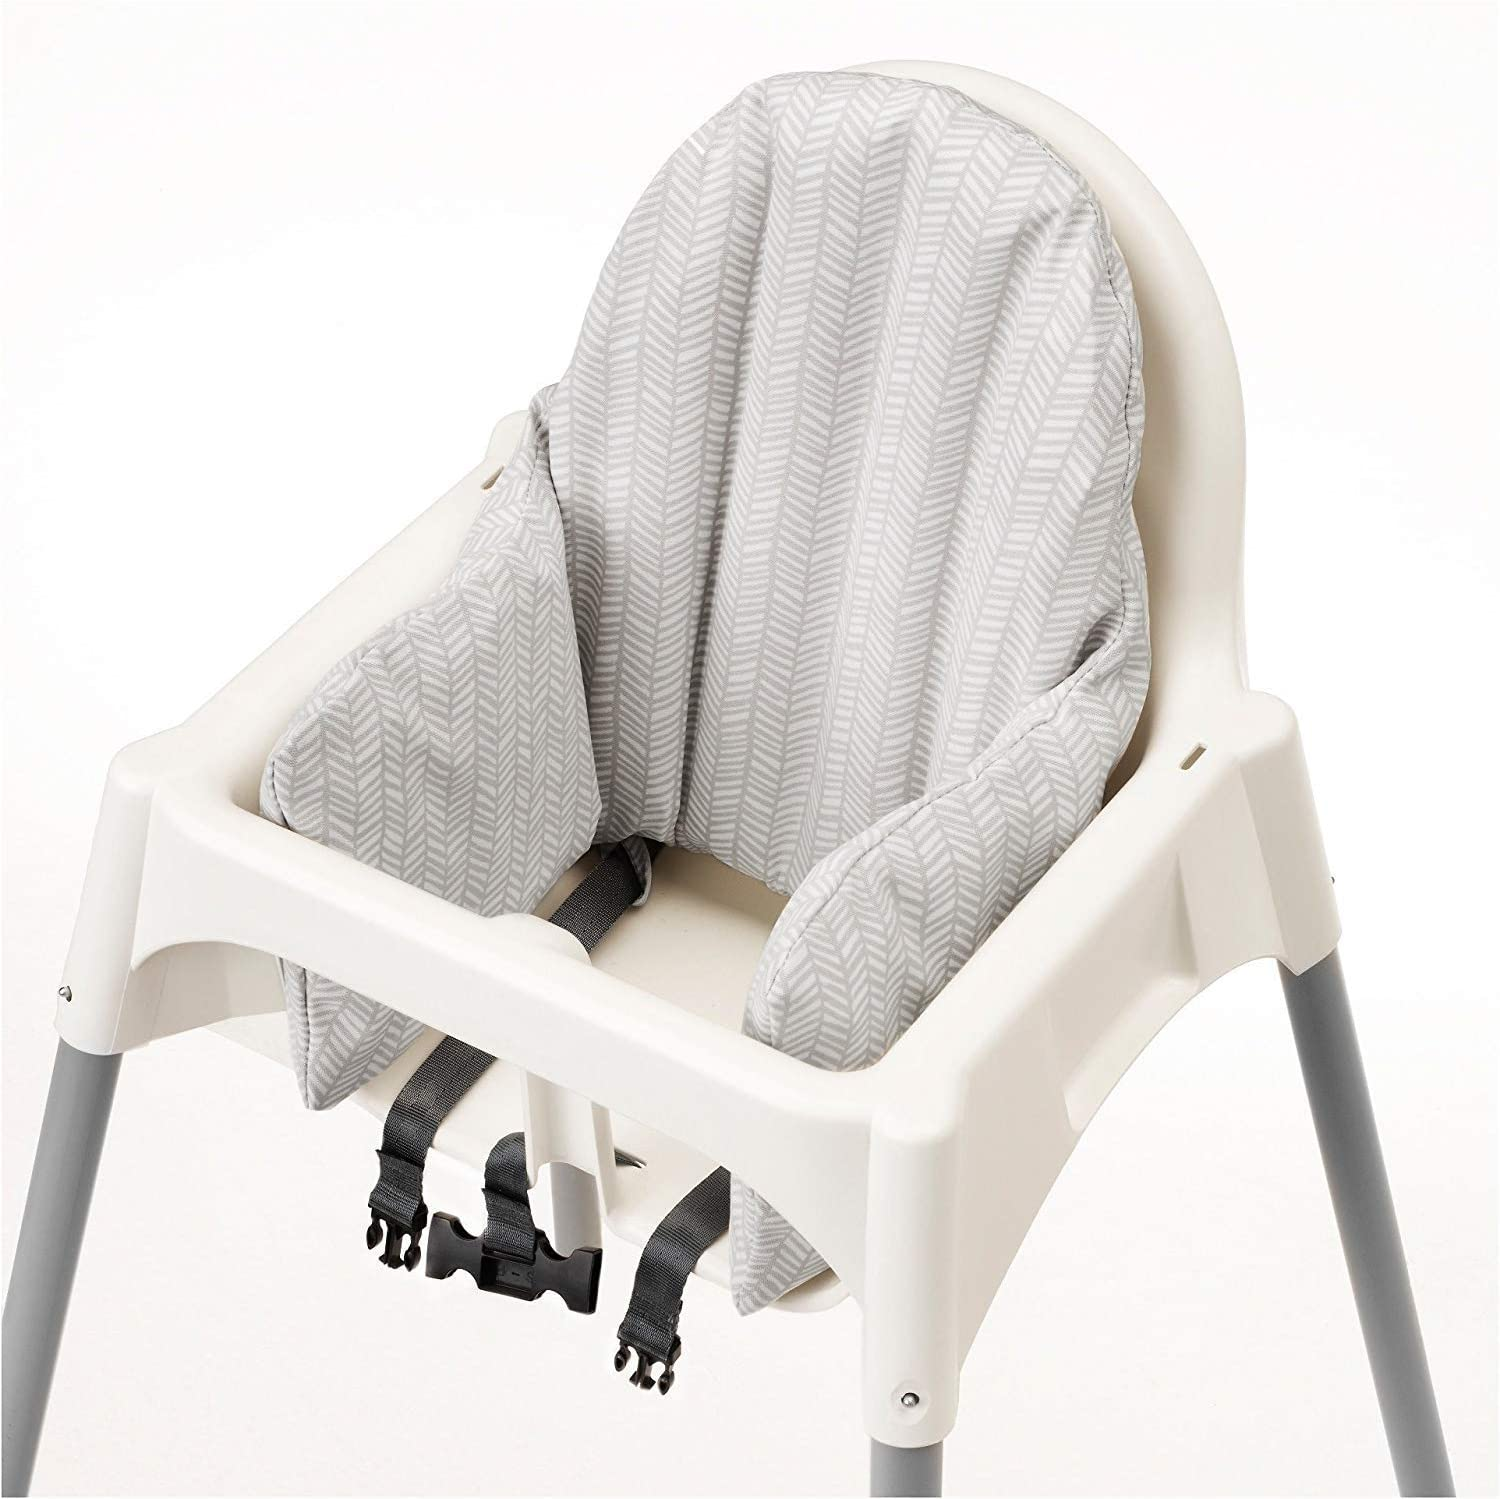 Ikea Antilop Highchair With Tray Safety Belt White Silver Colour